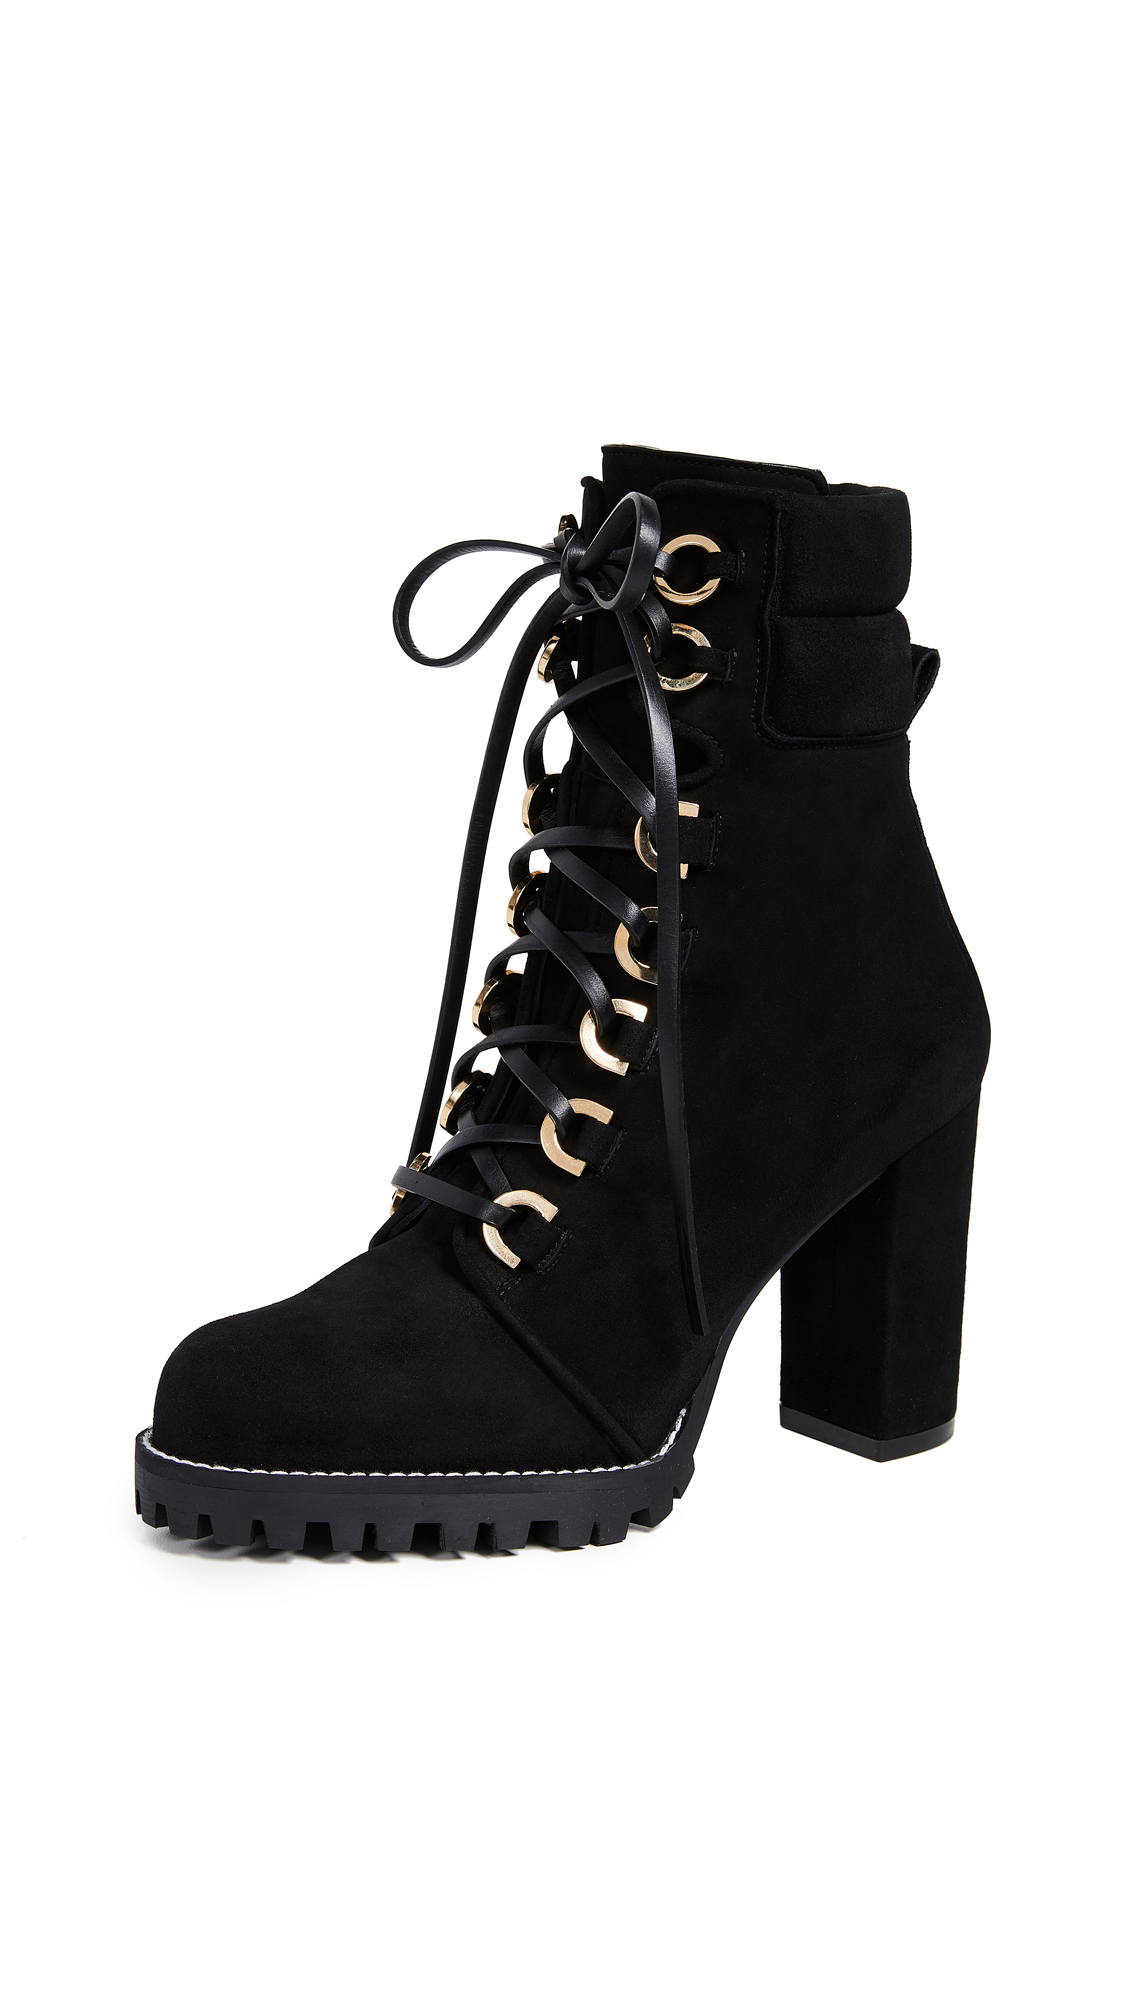 Stuart Weitzman Shackleton Boots - Black